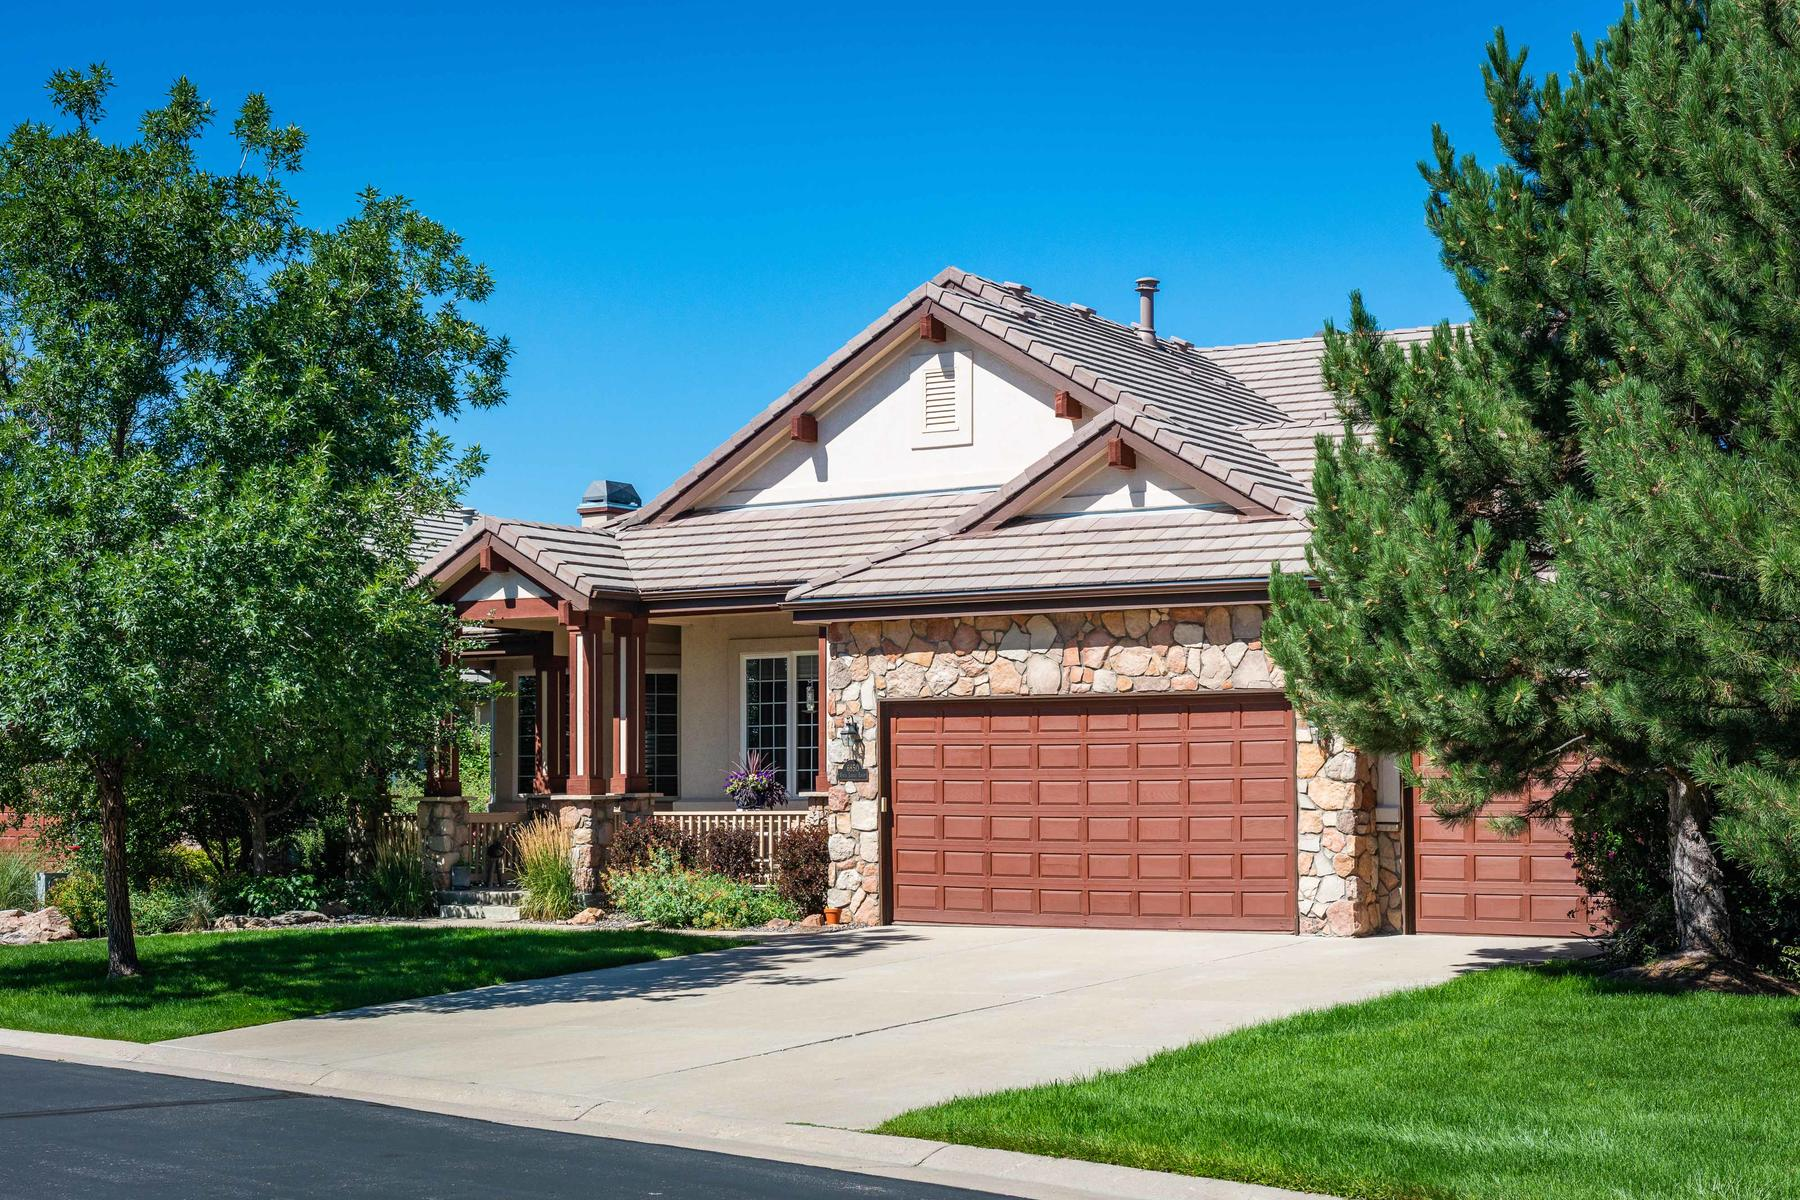 Single Family Home for Active at One of the best view lots in Daniels Ridge! 6850 Vista Lodge Loop Castle Pines, Colorado 80108 United States